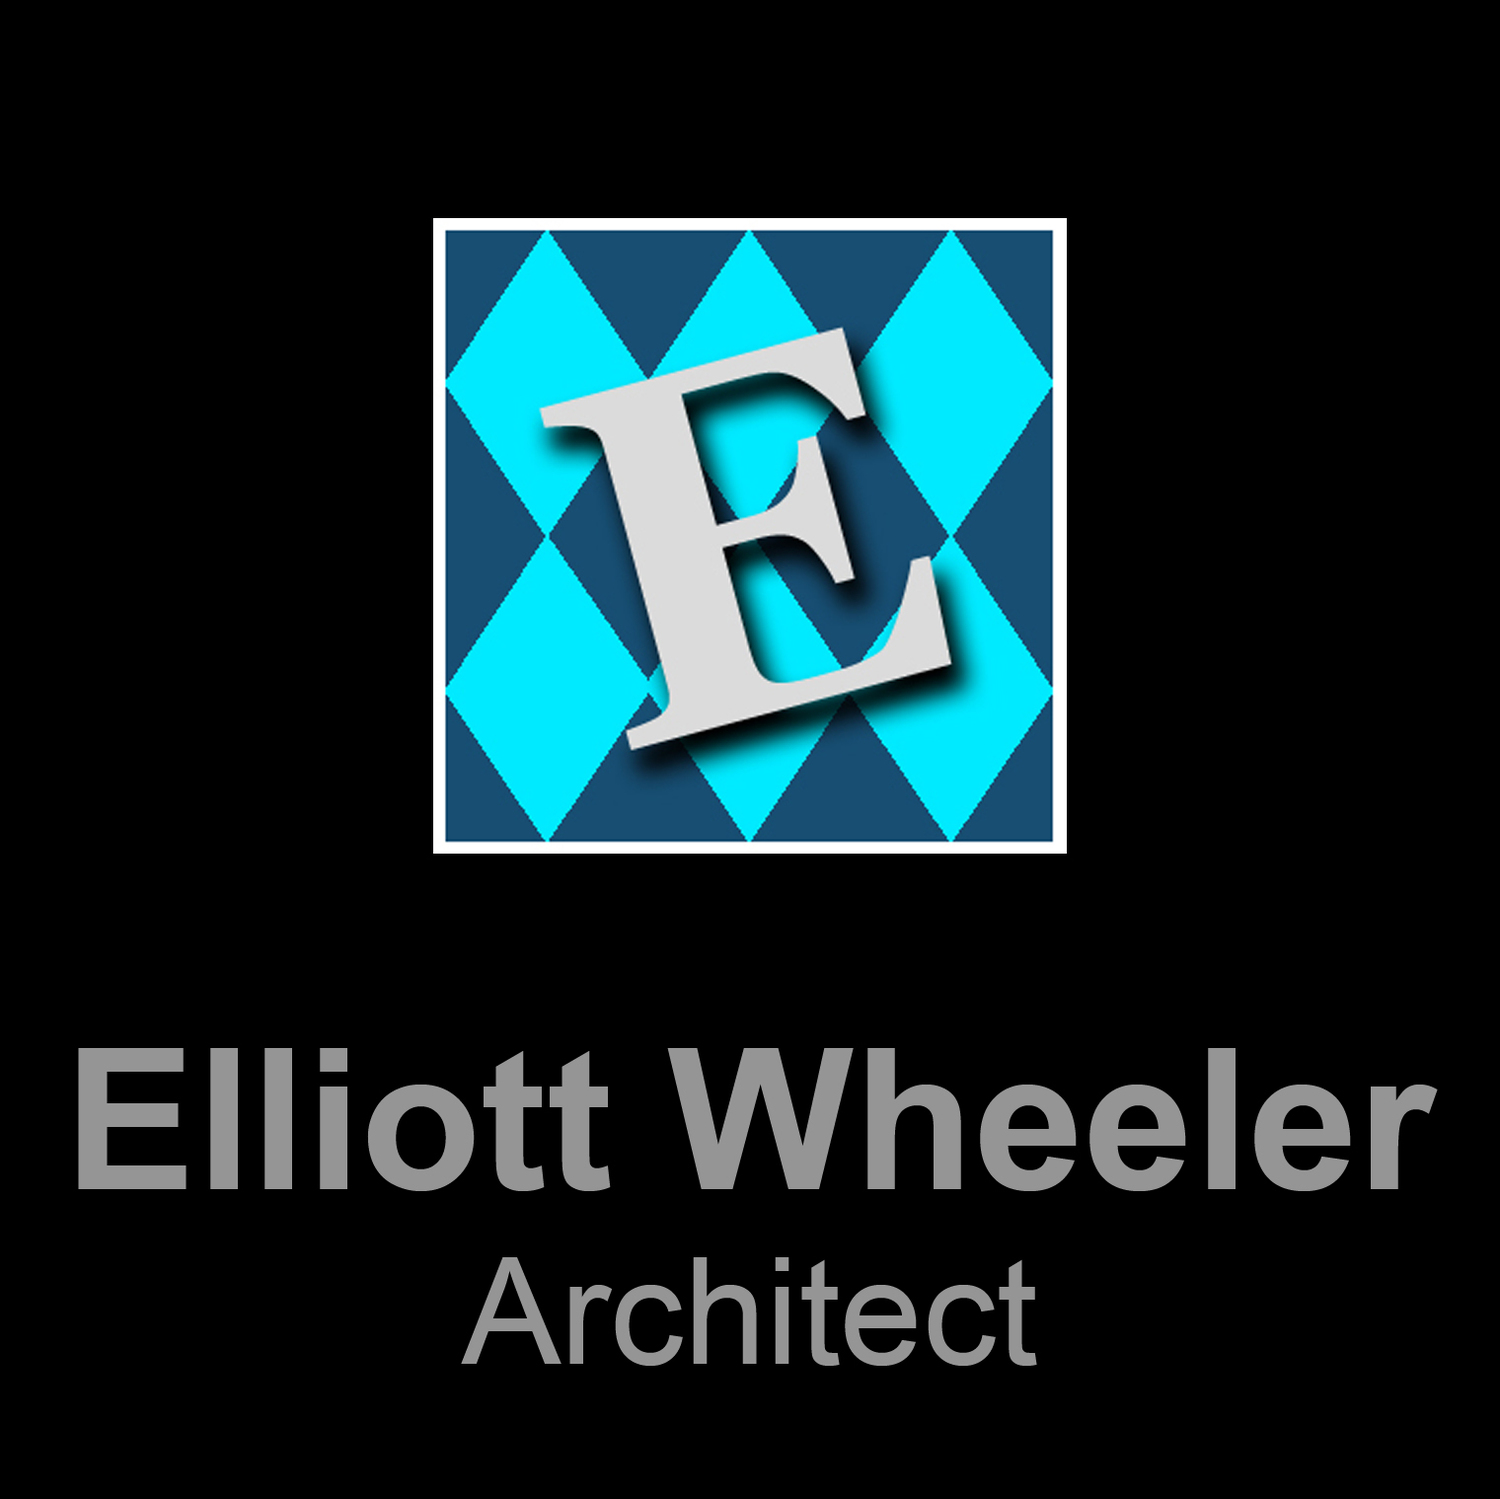 Elliott Wheeler Architect